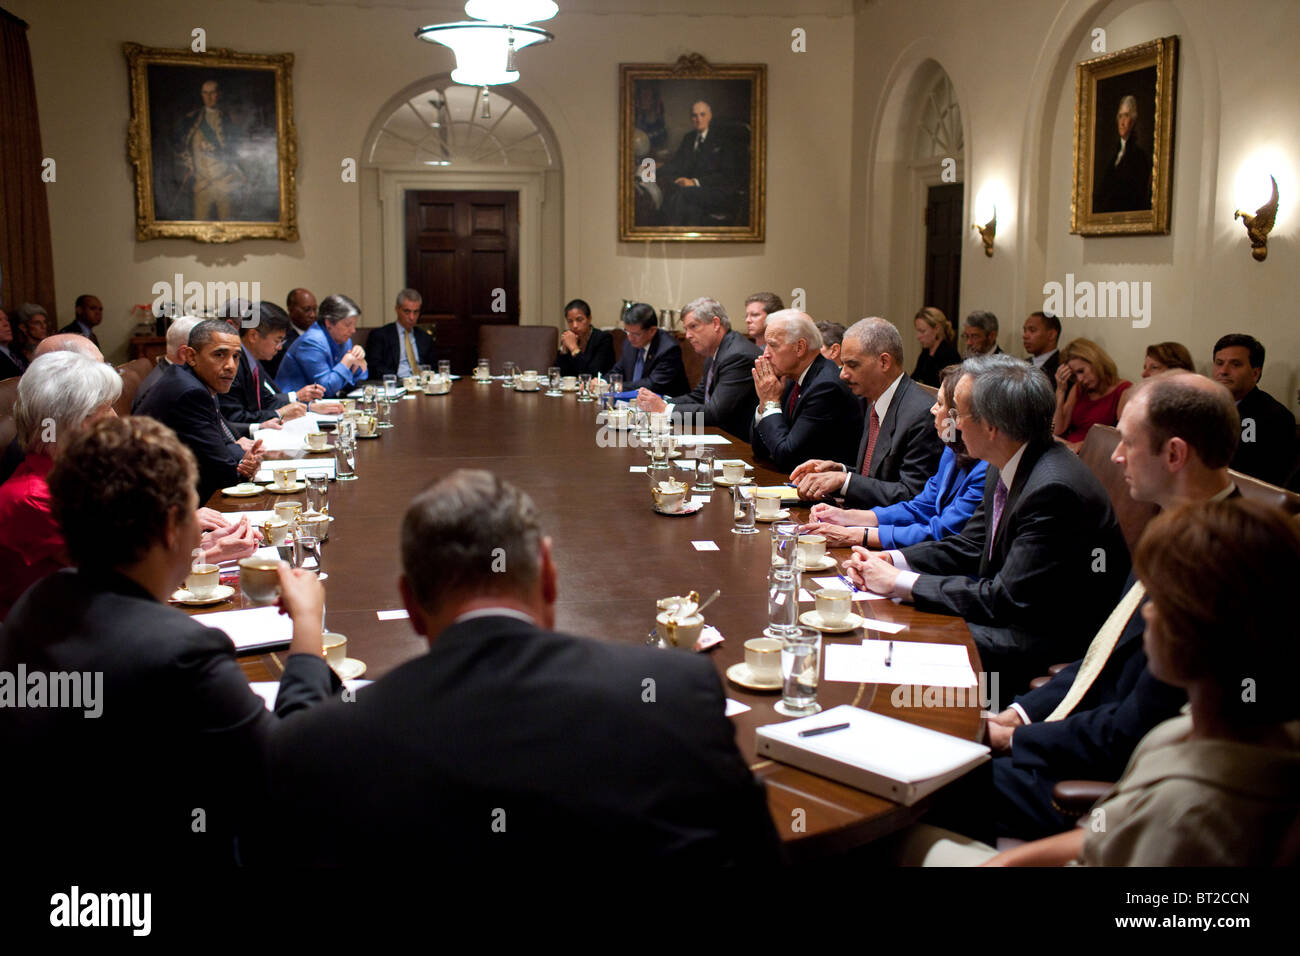 President Barack Obama meets with Cabinet members in the Cabinet Room of the White House, Sept. 15, 2010. - Stock Image